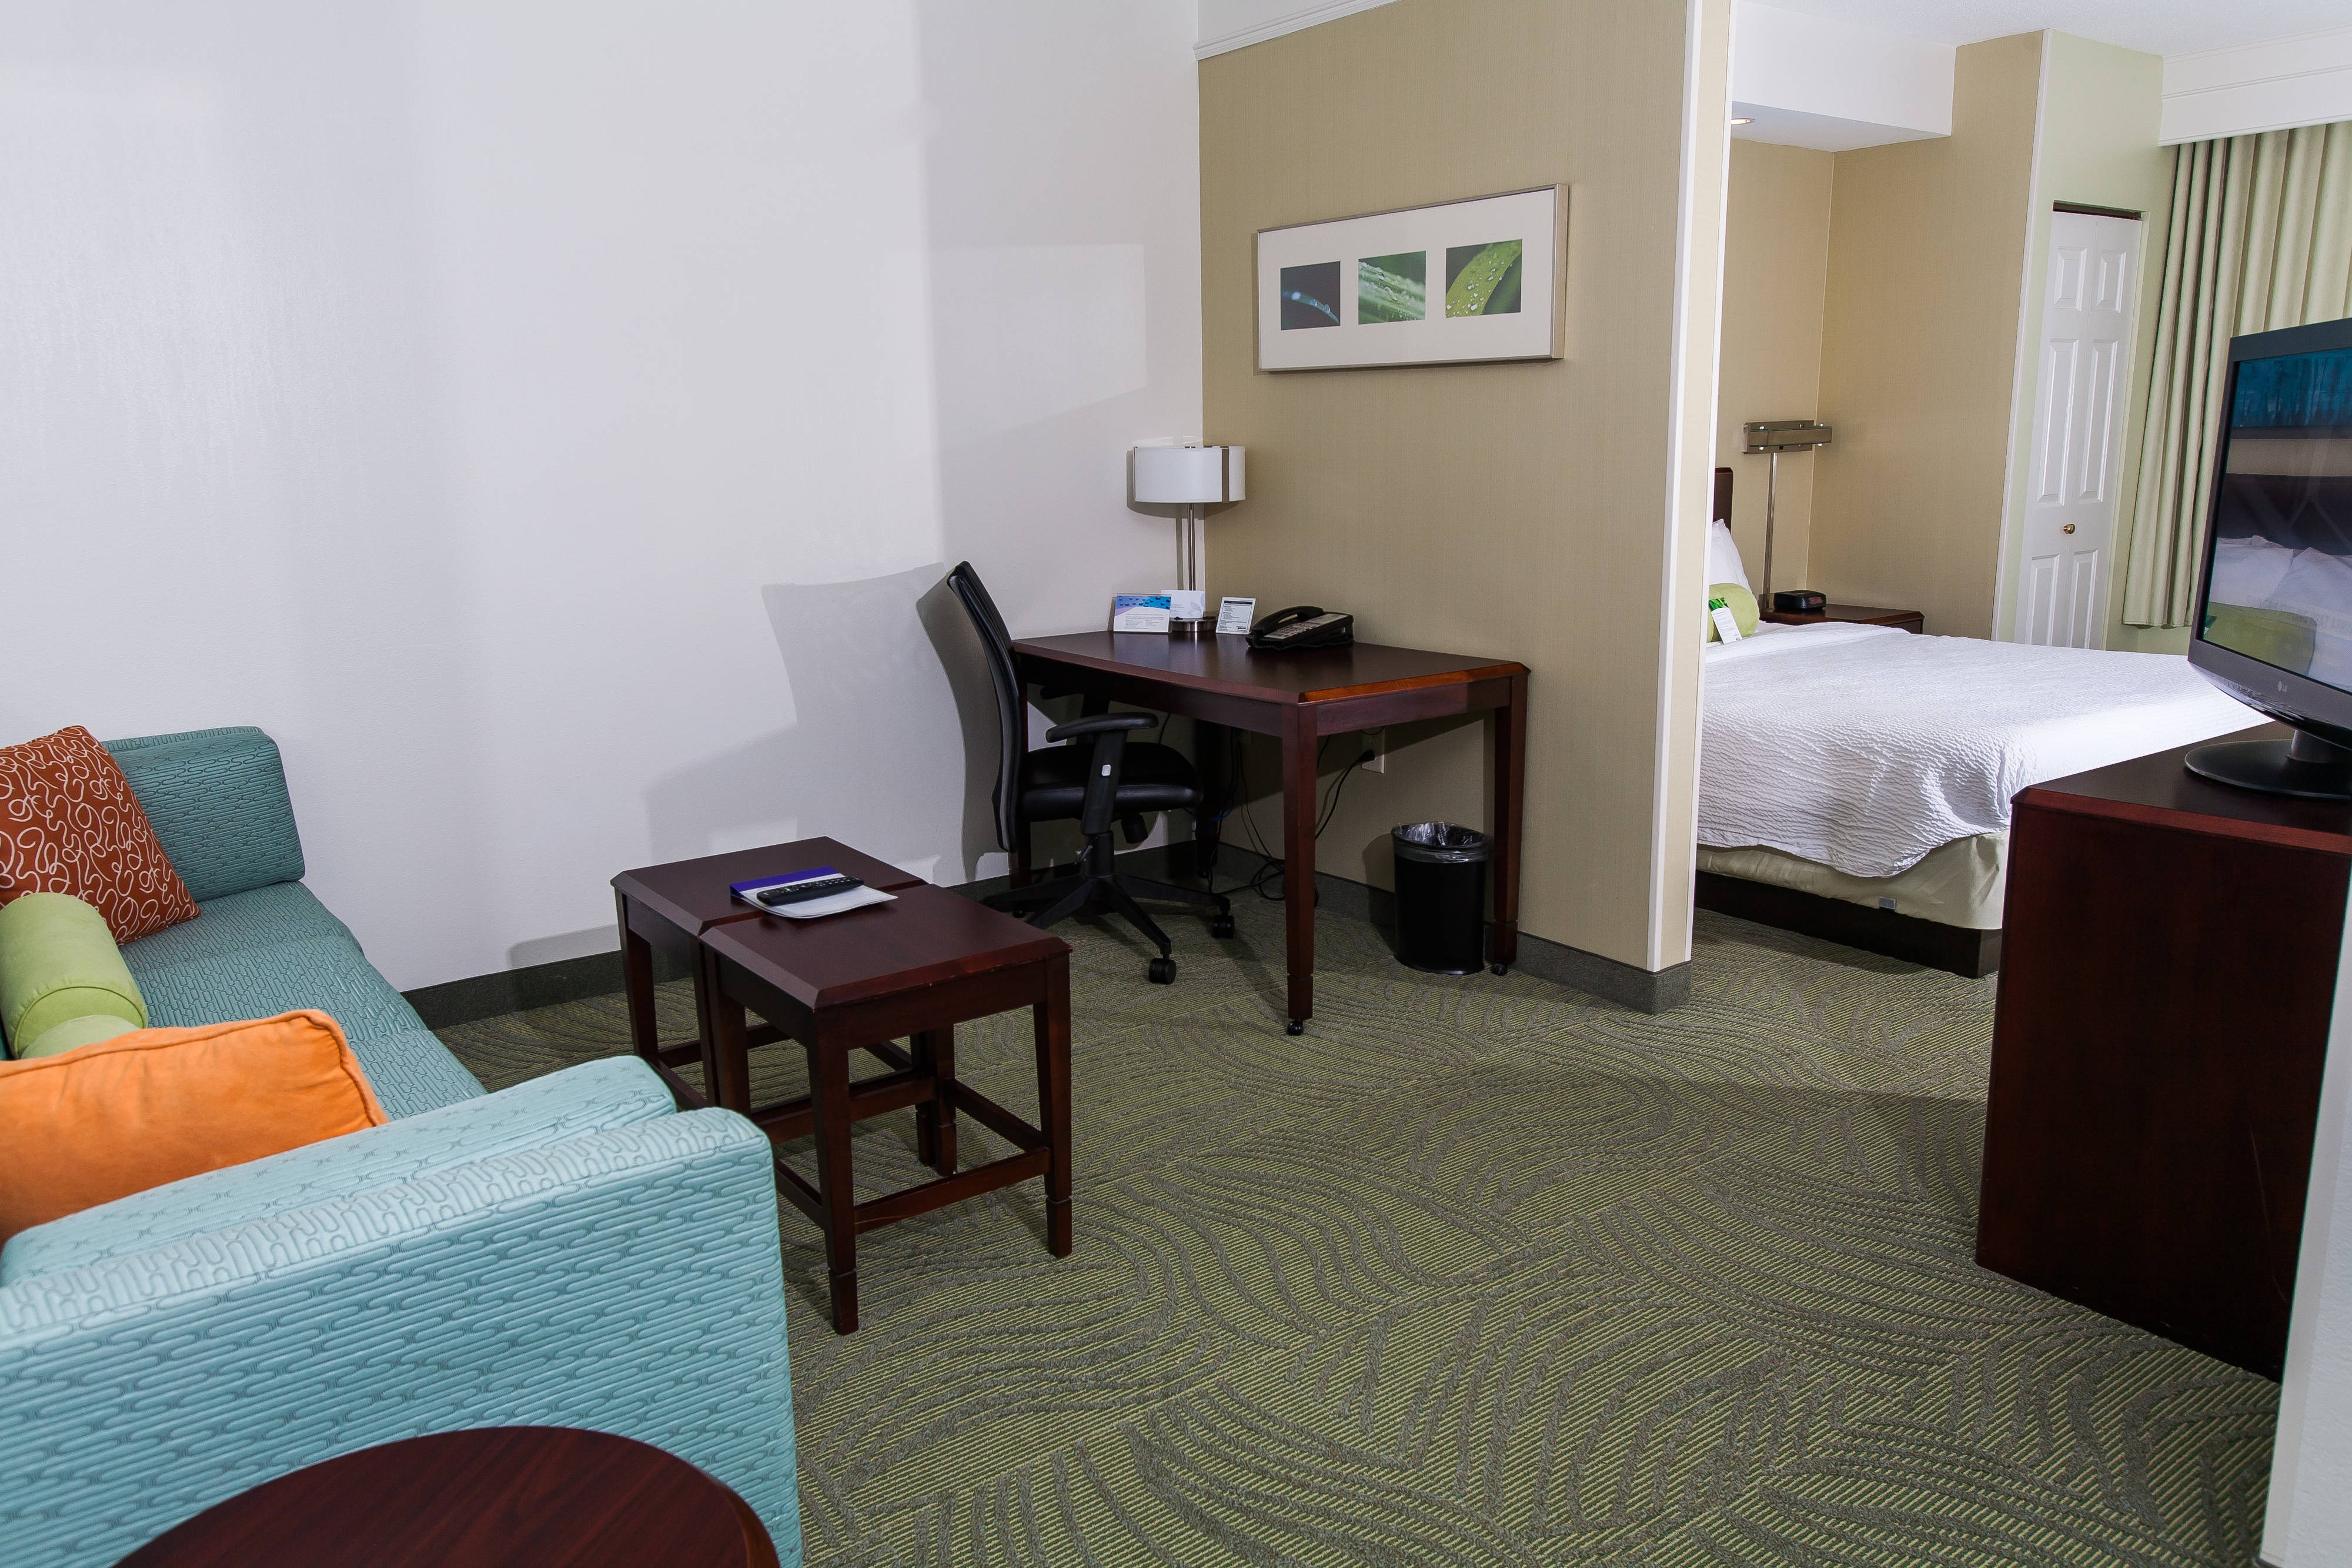 SpringHill Suites Marriott Florence King Suite